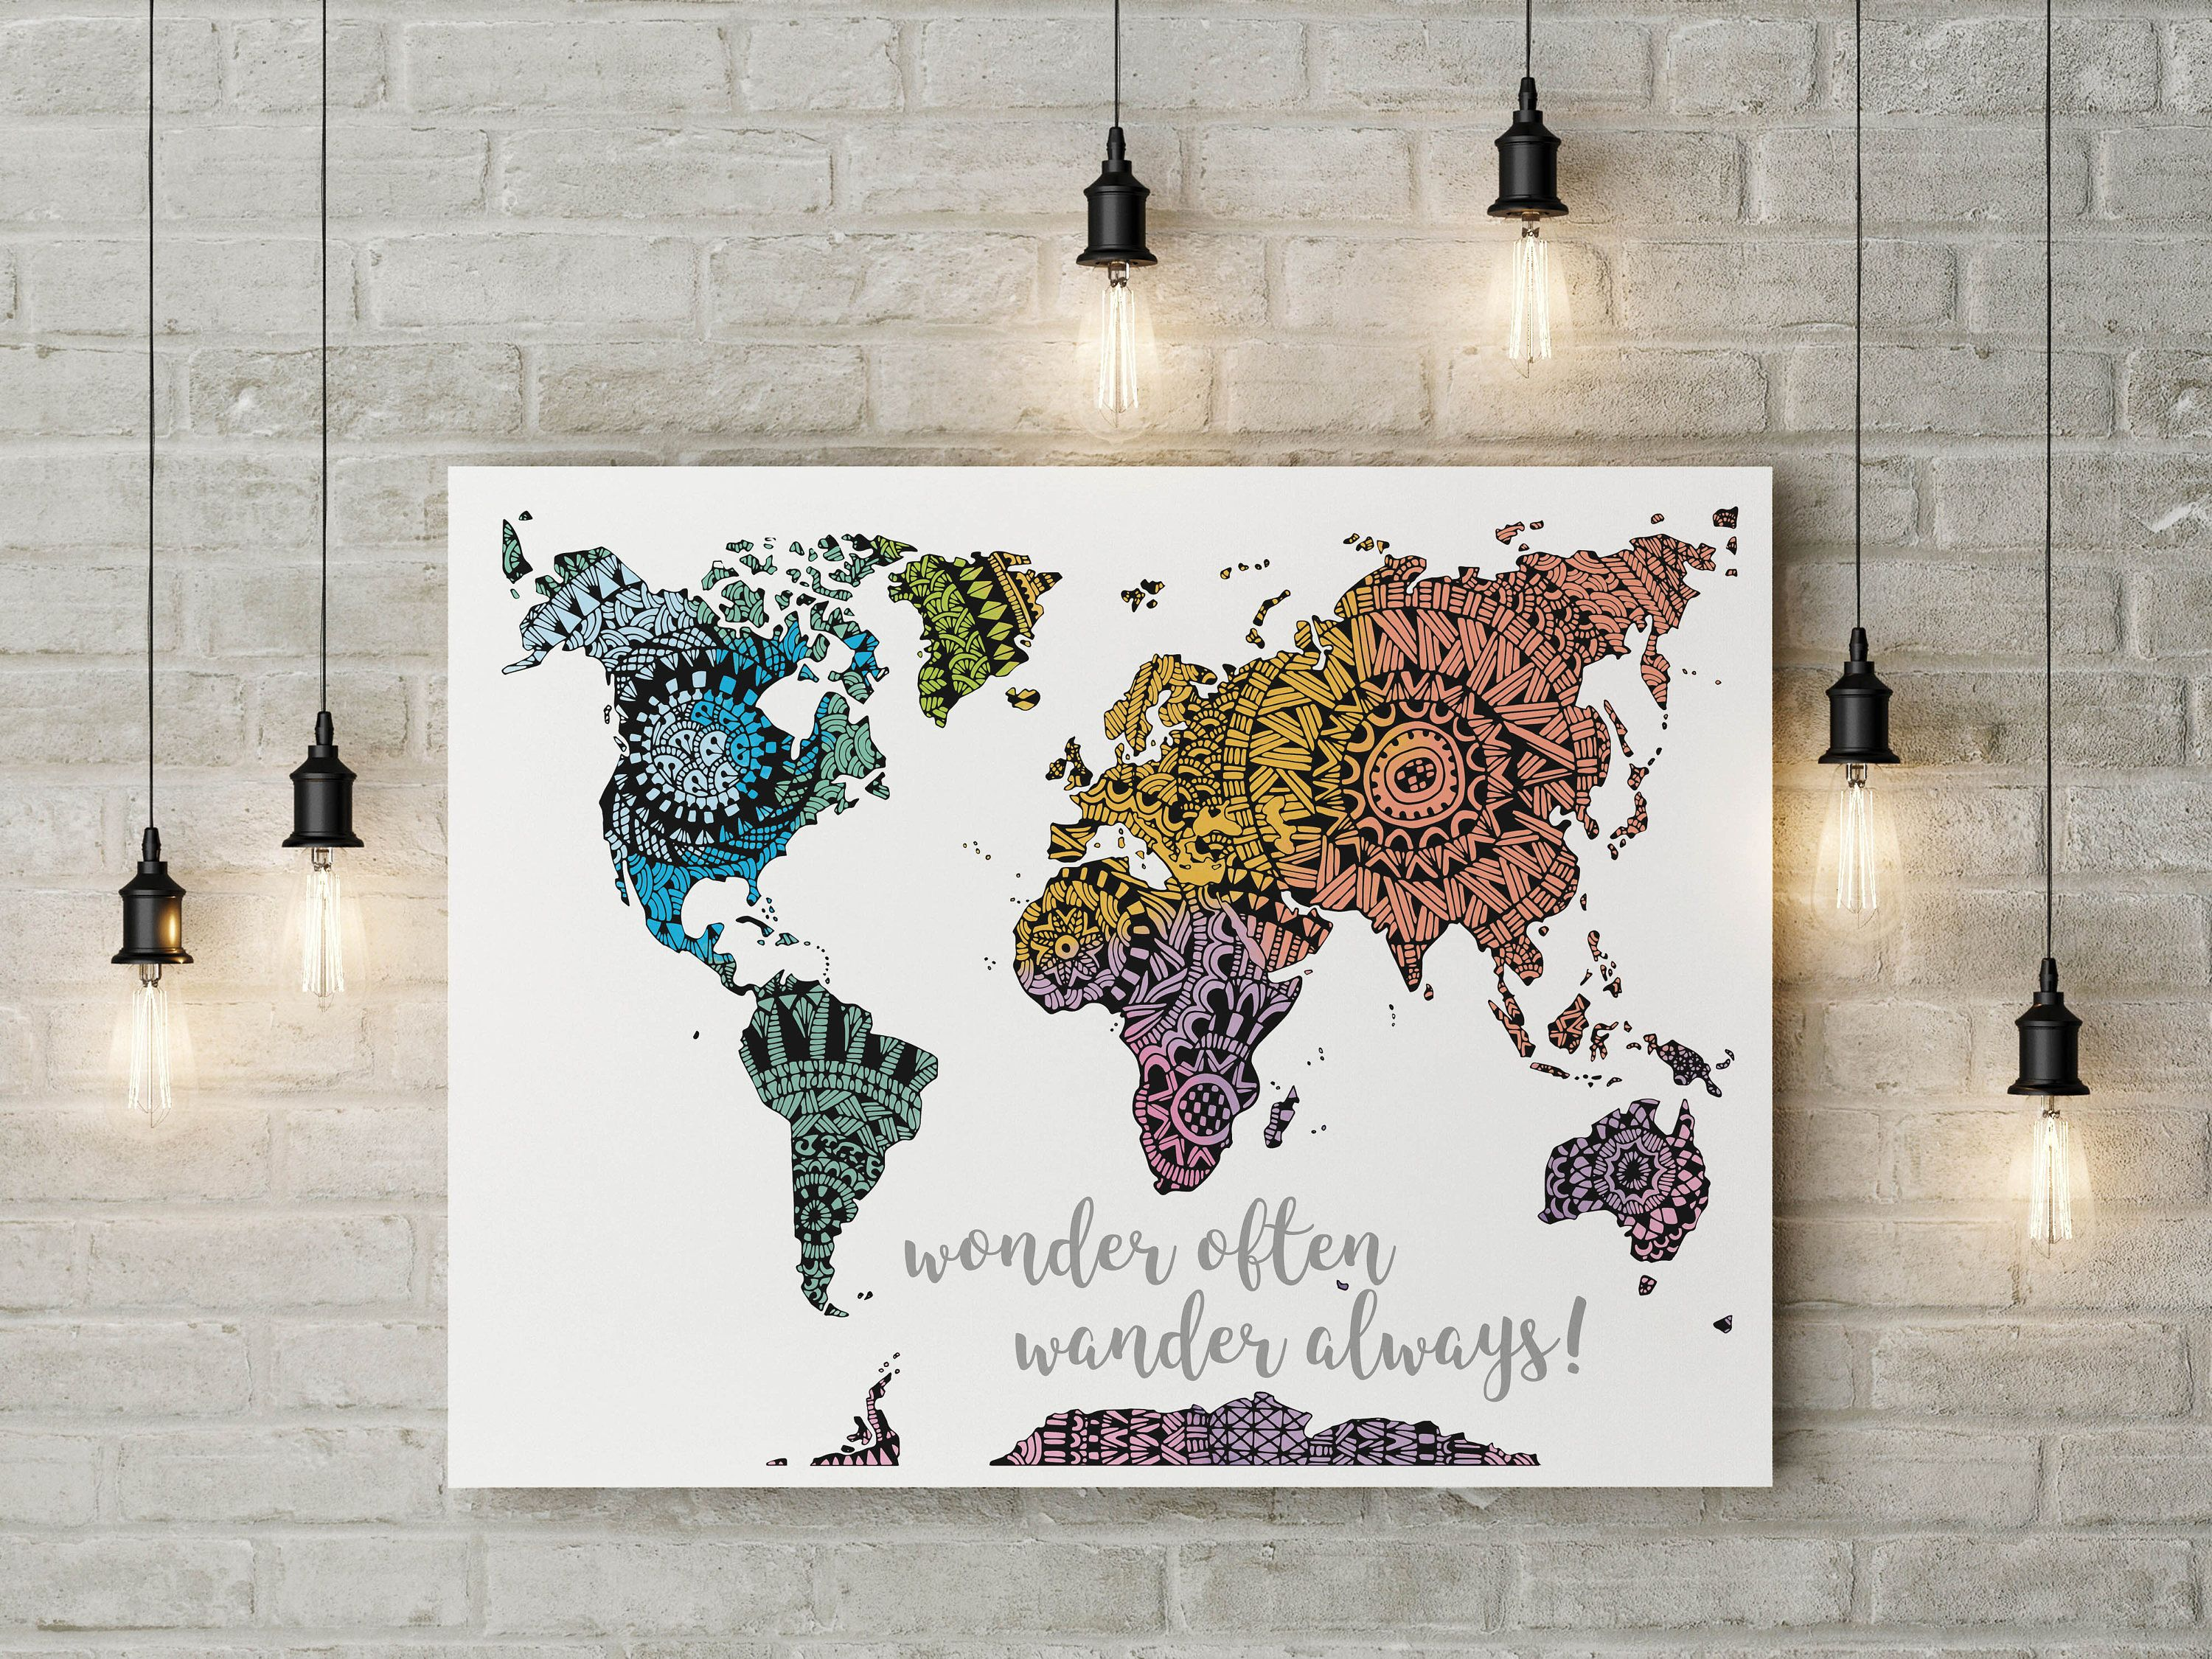 Colorful world map poster watercolor print world map print wall colorful world map poster watercolor print world map print wall art travel art adventurer gift anniversary gift traveler gift color gumiabroncs Gallery